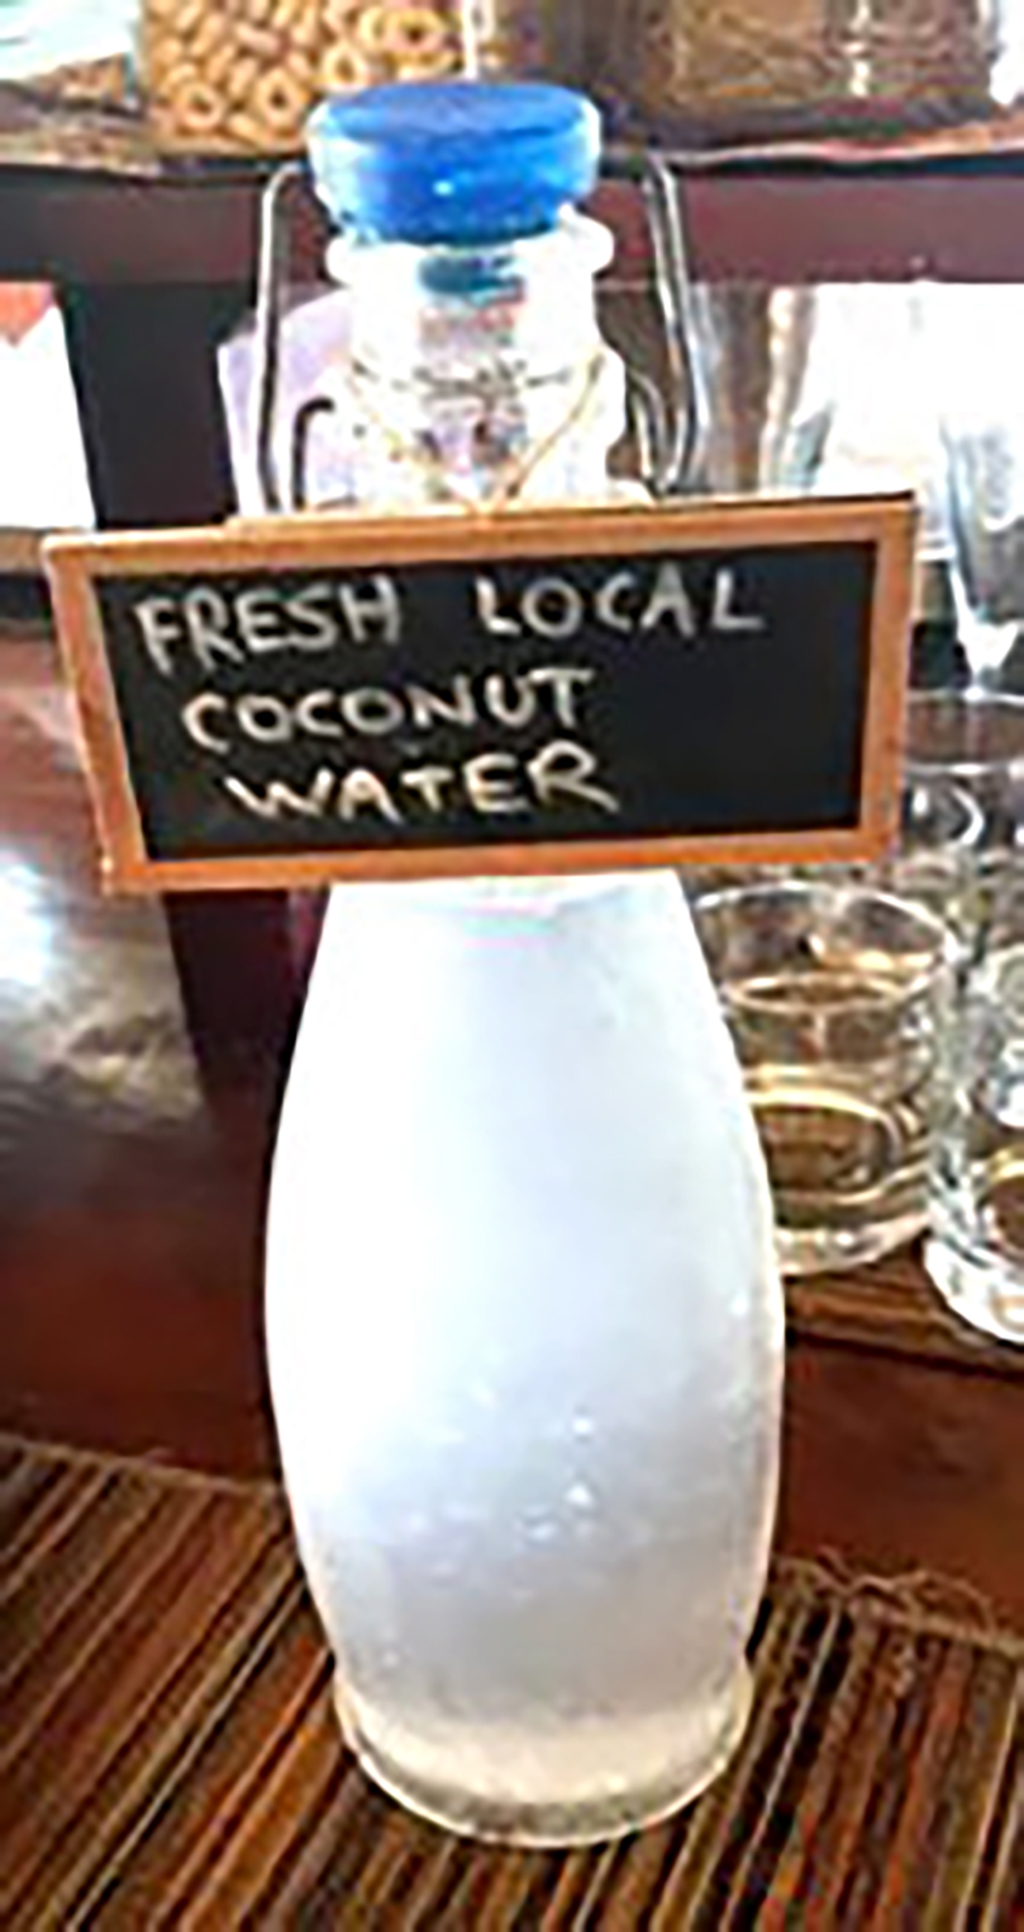 A bottle of locally produced coconut water